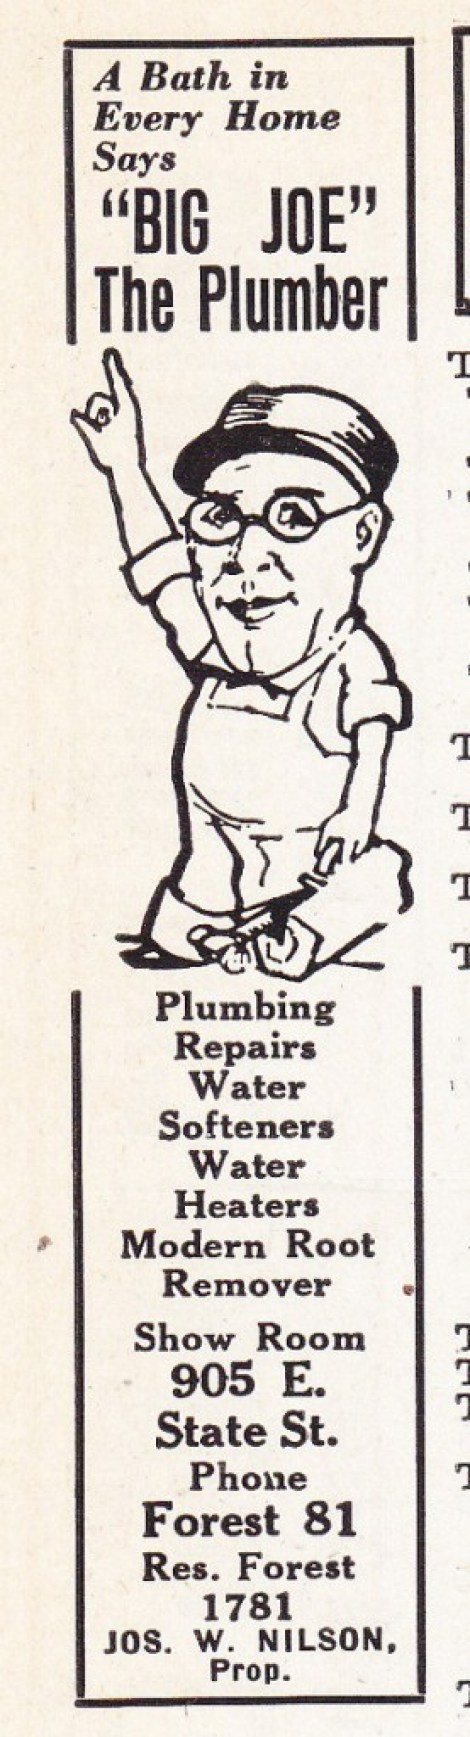 Big Joe the Plumber